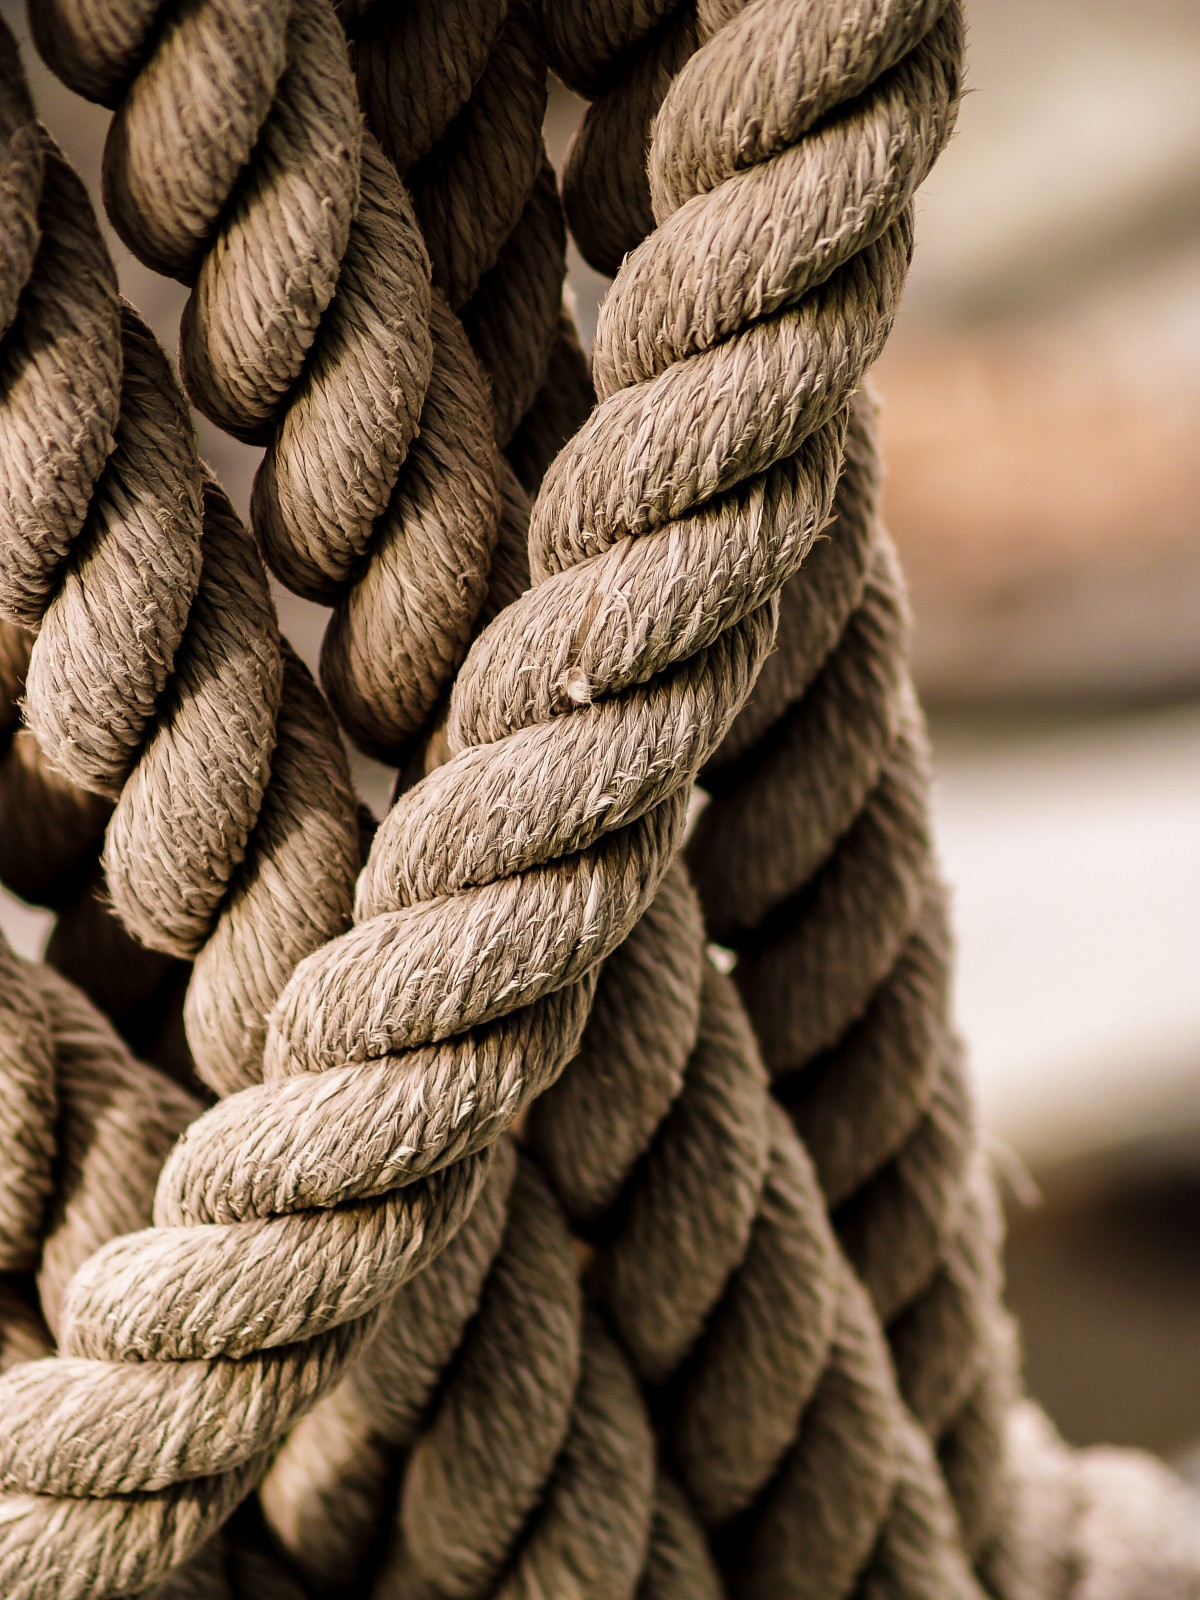 Free Images Background Rope Cord Nautical Closeup